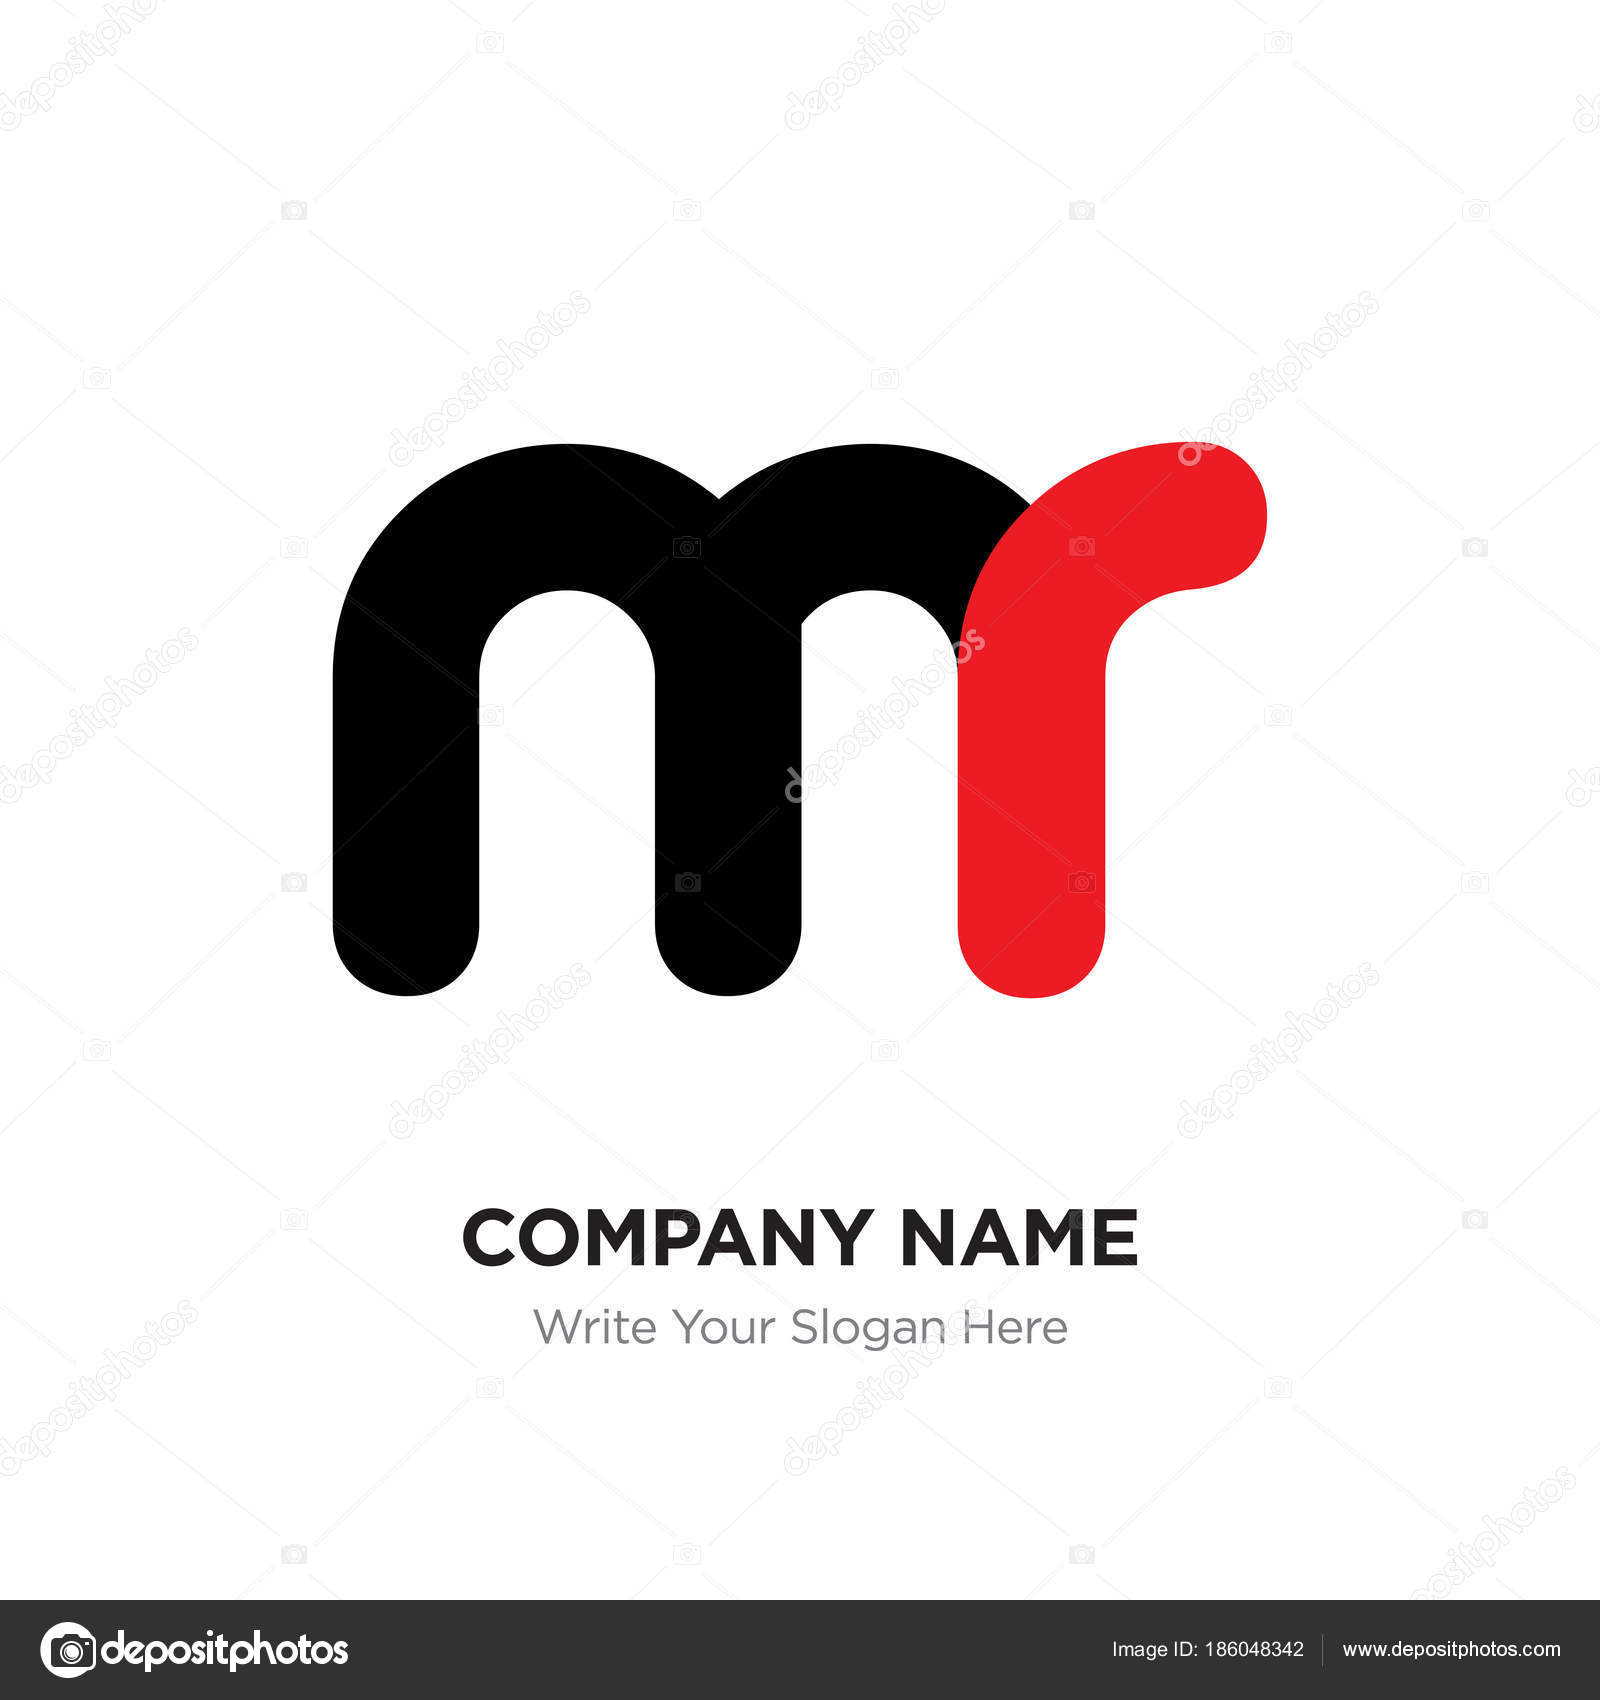 Rm name logo | Abstract letter mr or rm logo design template